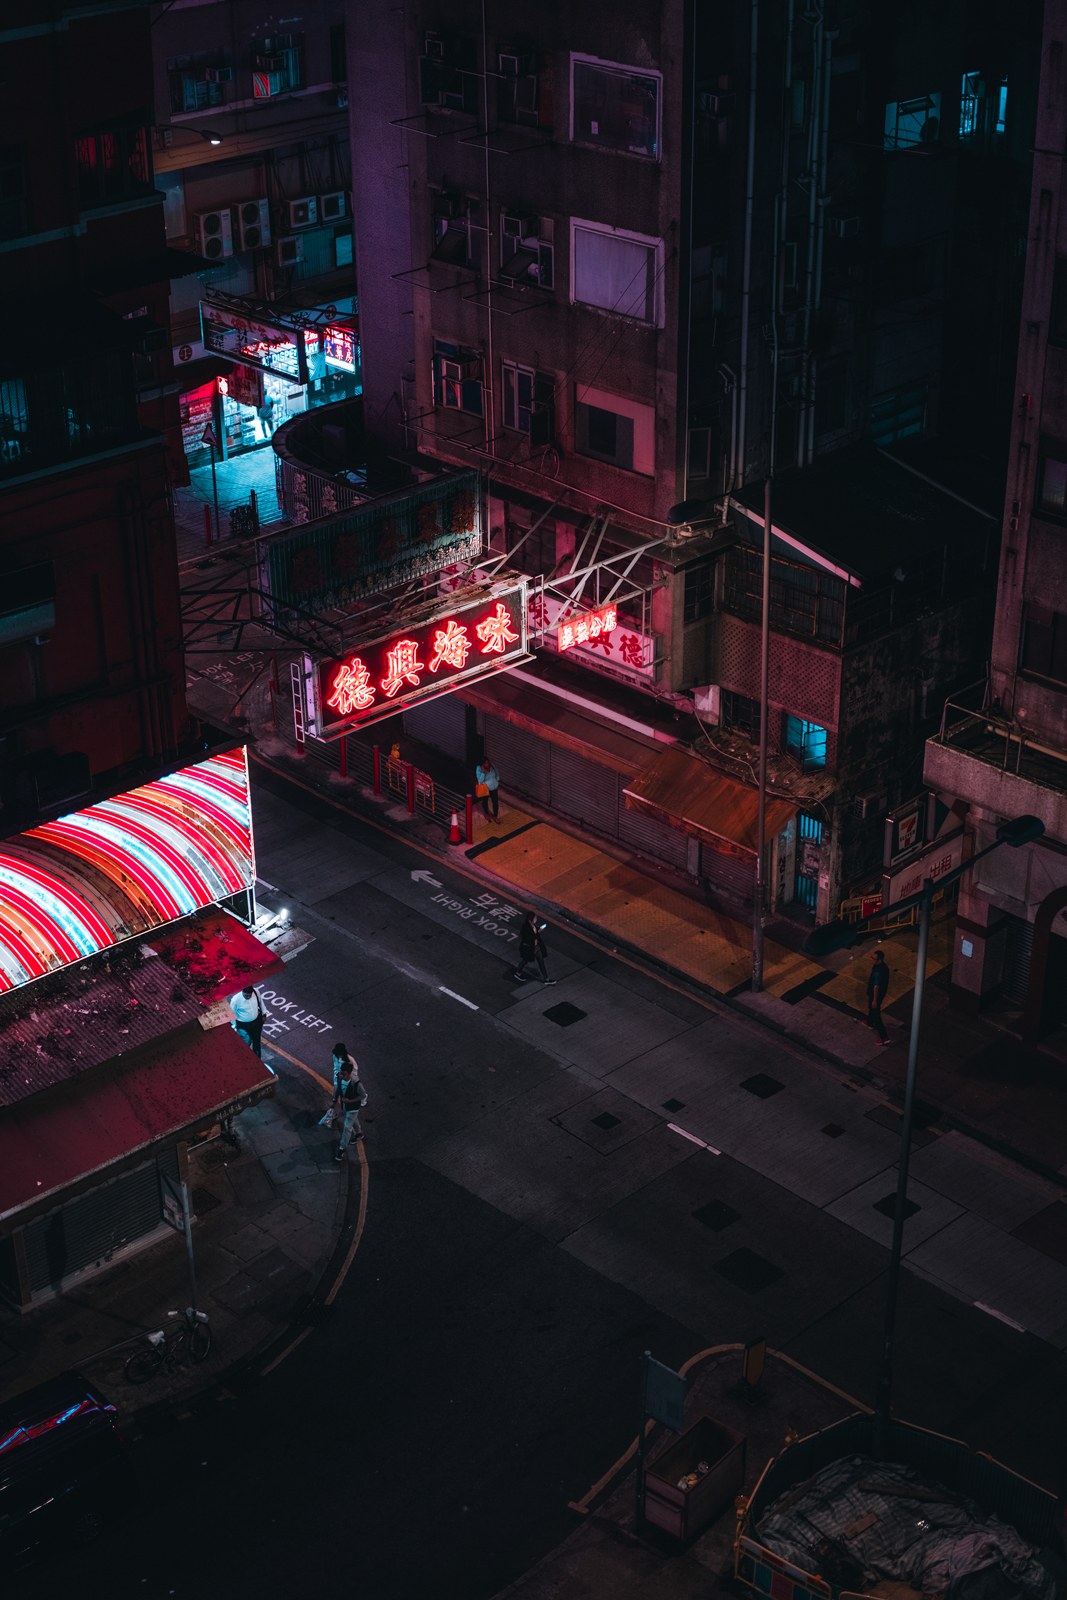 Exploring Hong Kong through Neon H-ART Series